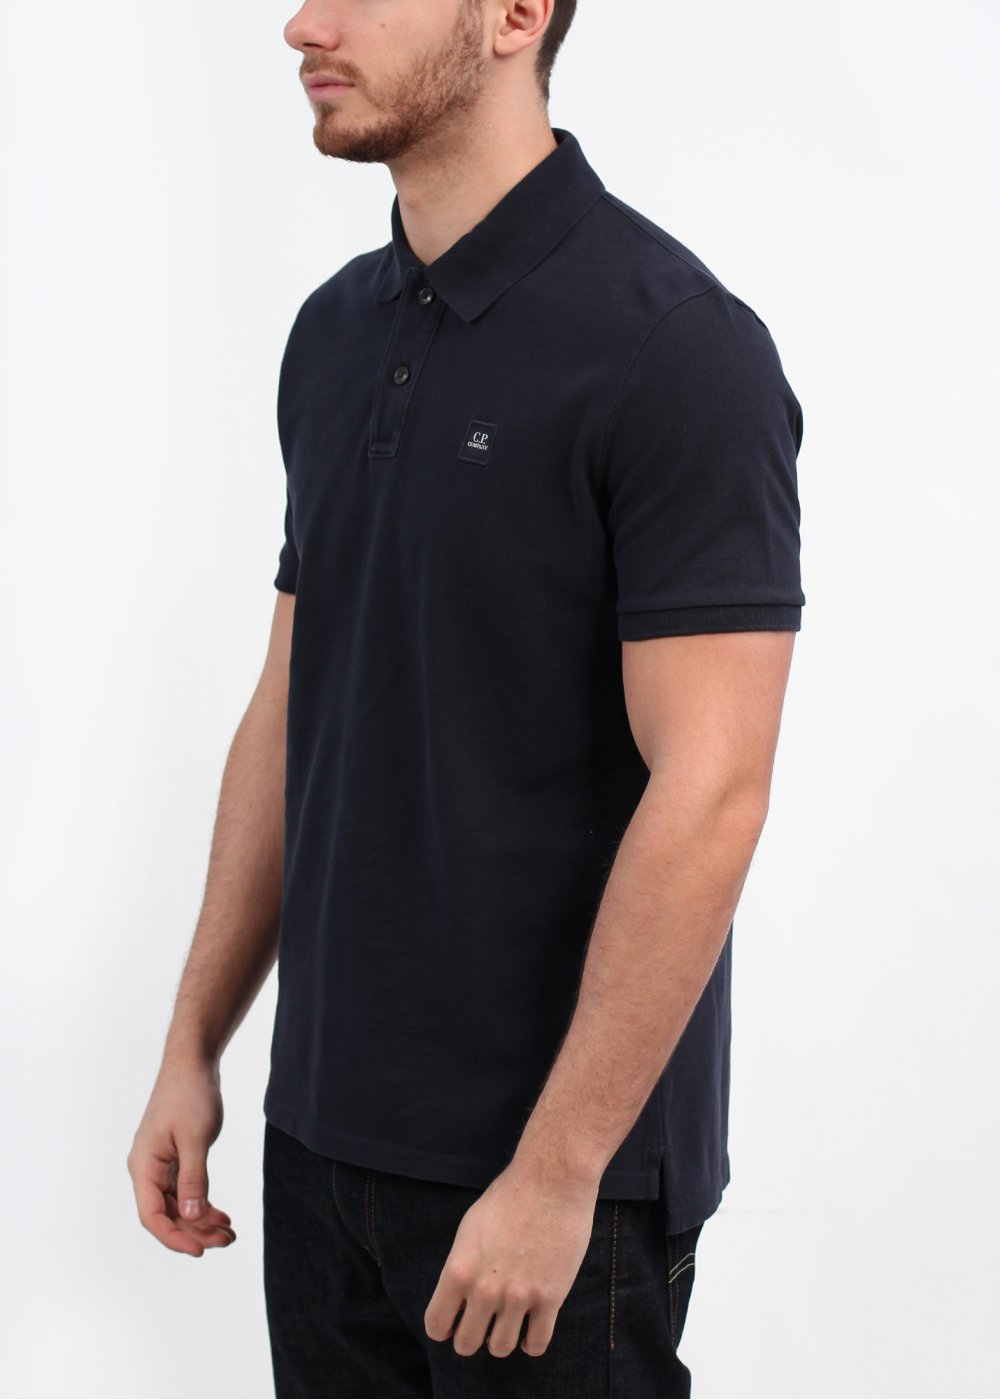 Company polo shirt with logo for Corporate polo shirts with logo